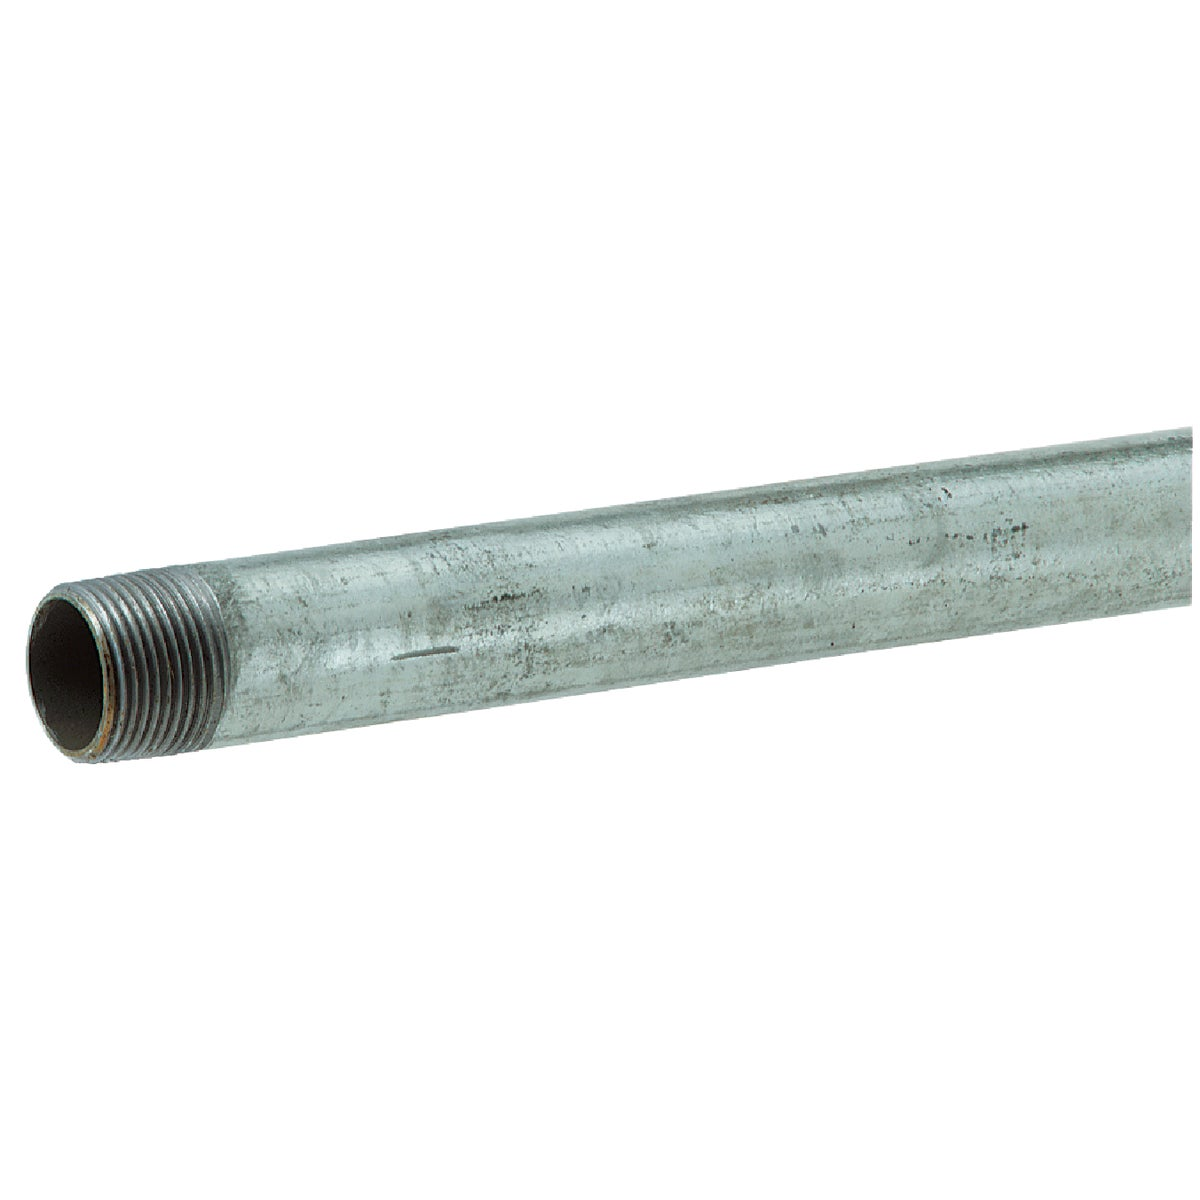 1/2X18 GALV RDI-CT PIPE - 1/2X18 by Southland Pipe Nippl